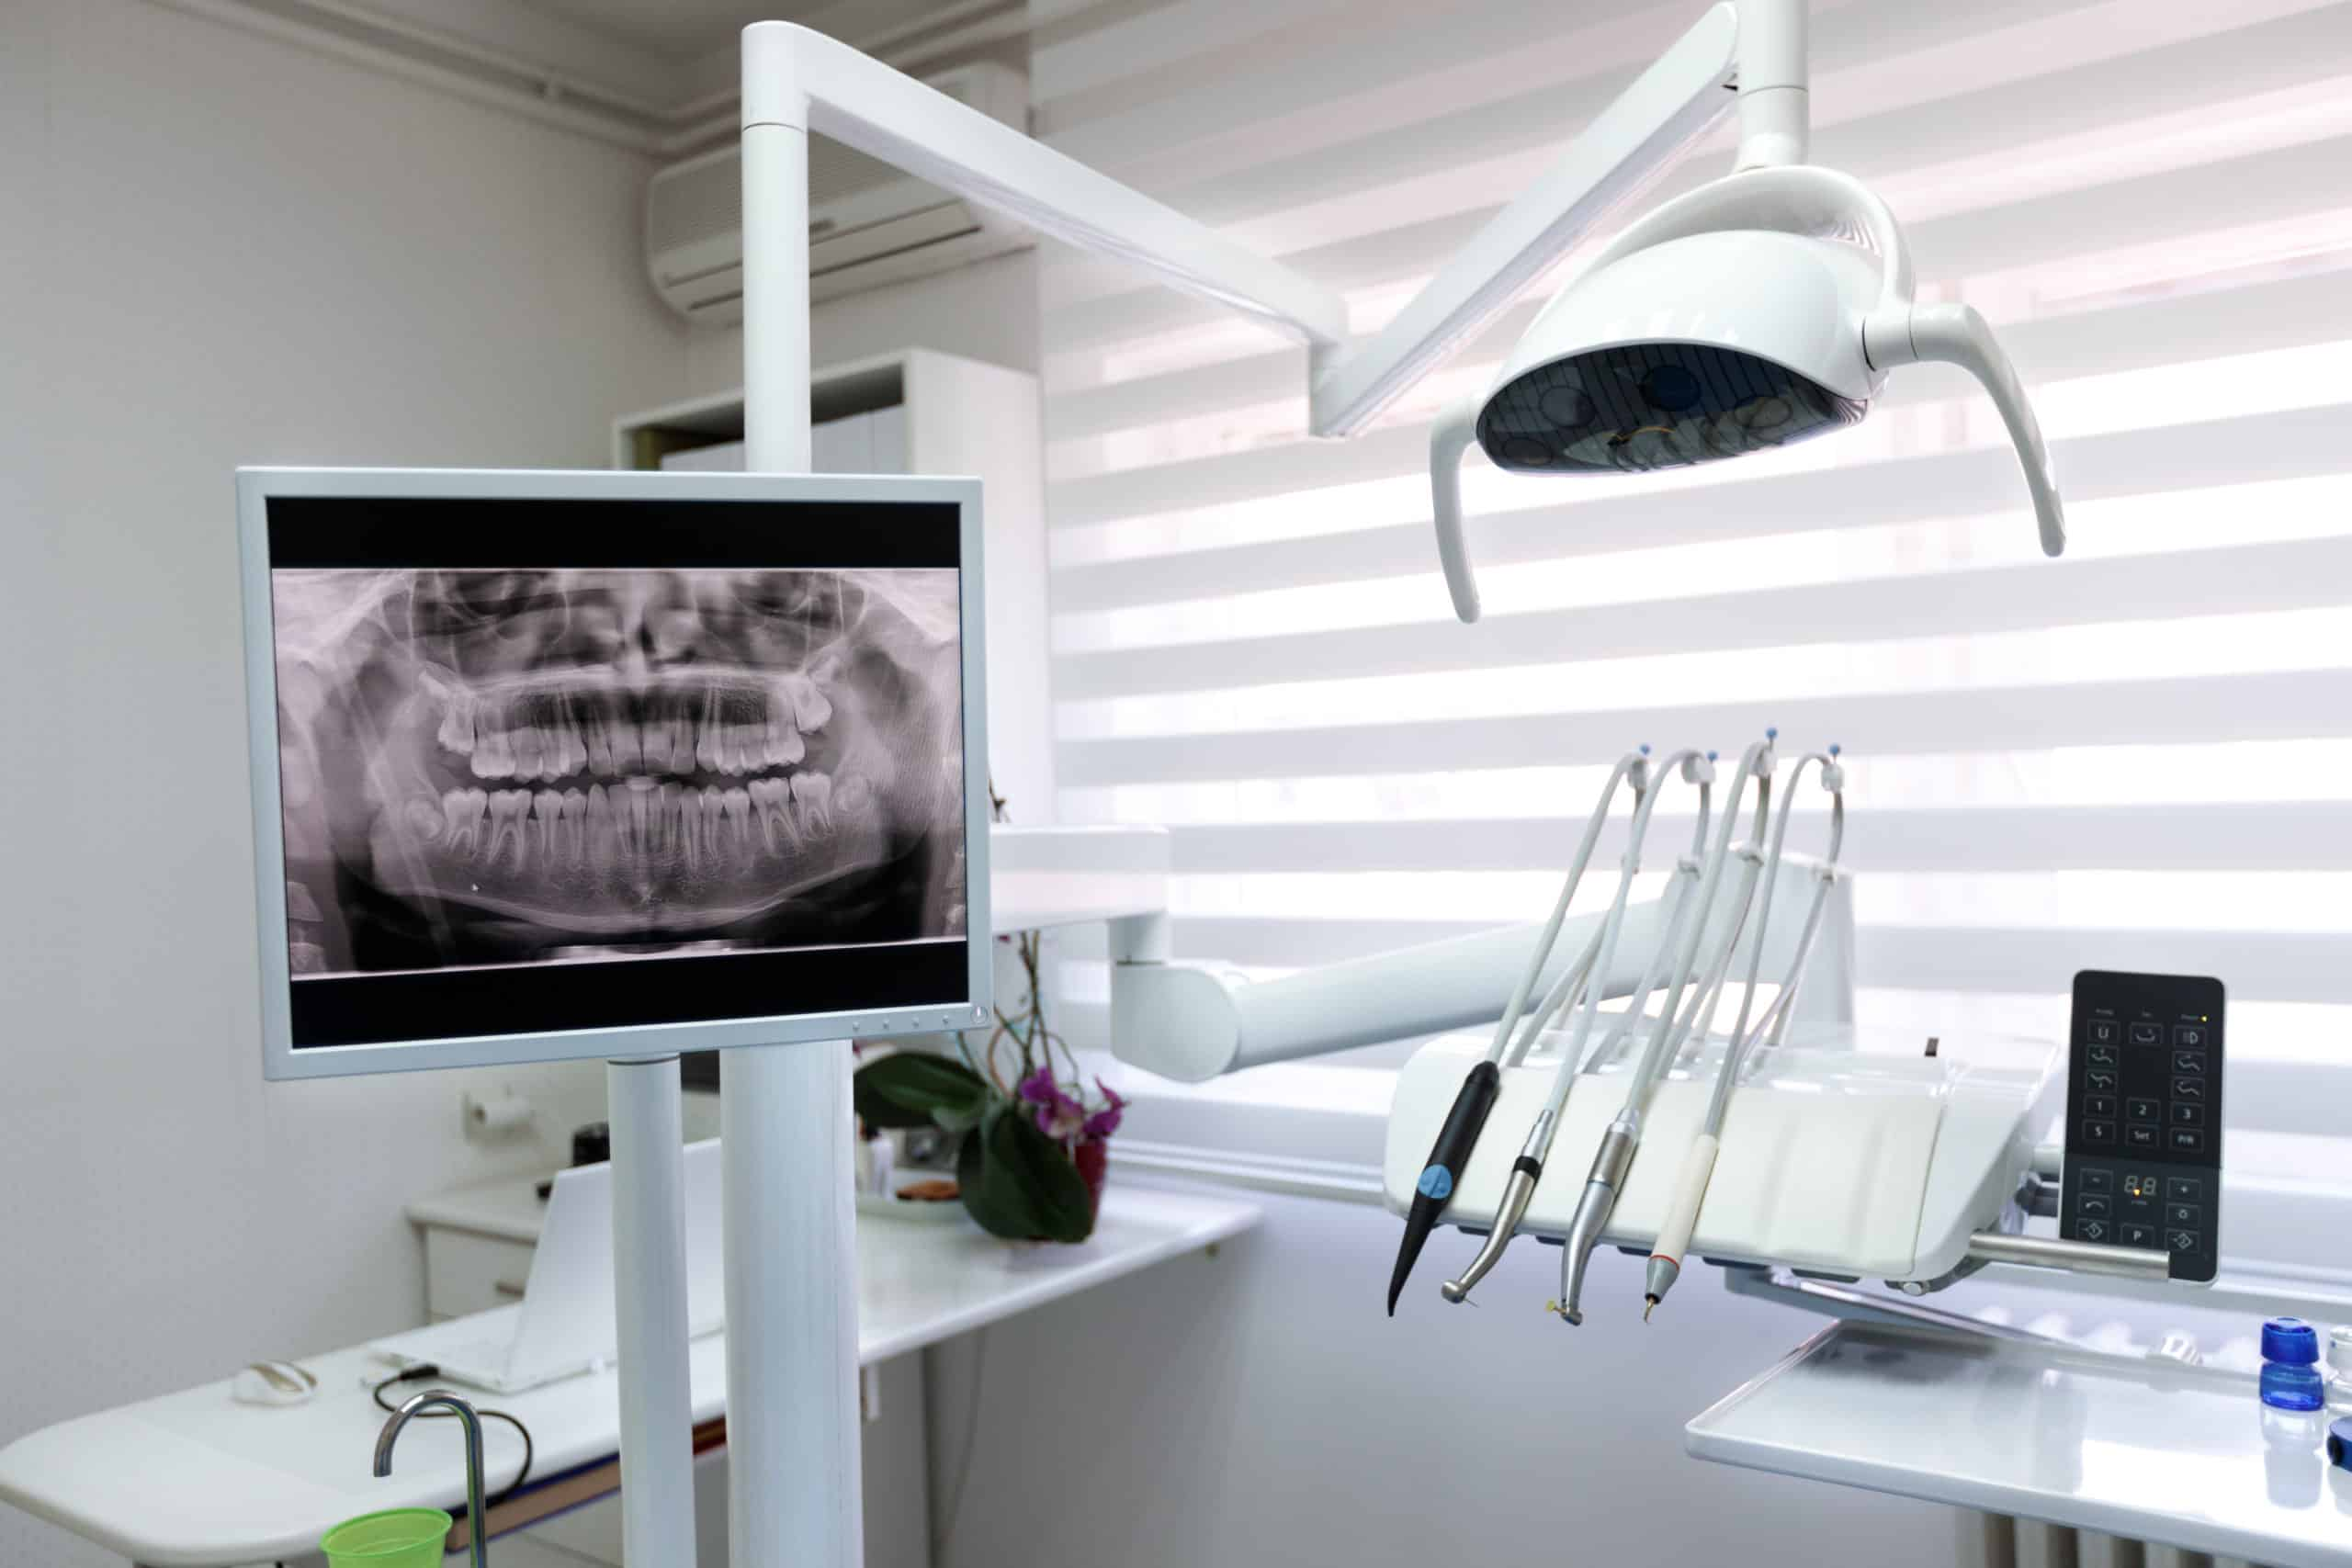 Digital x-ray displayed in the advanced technology dental clinic in medavakkam